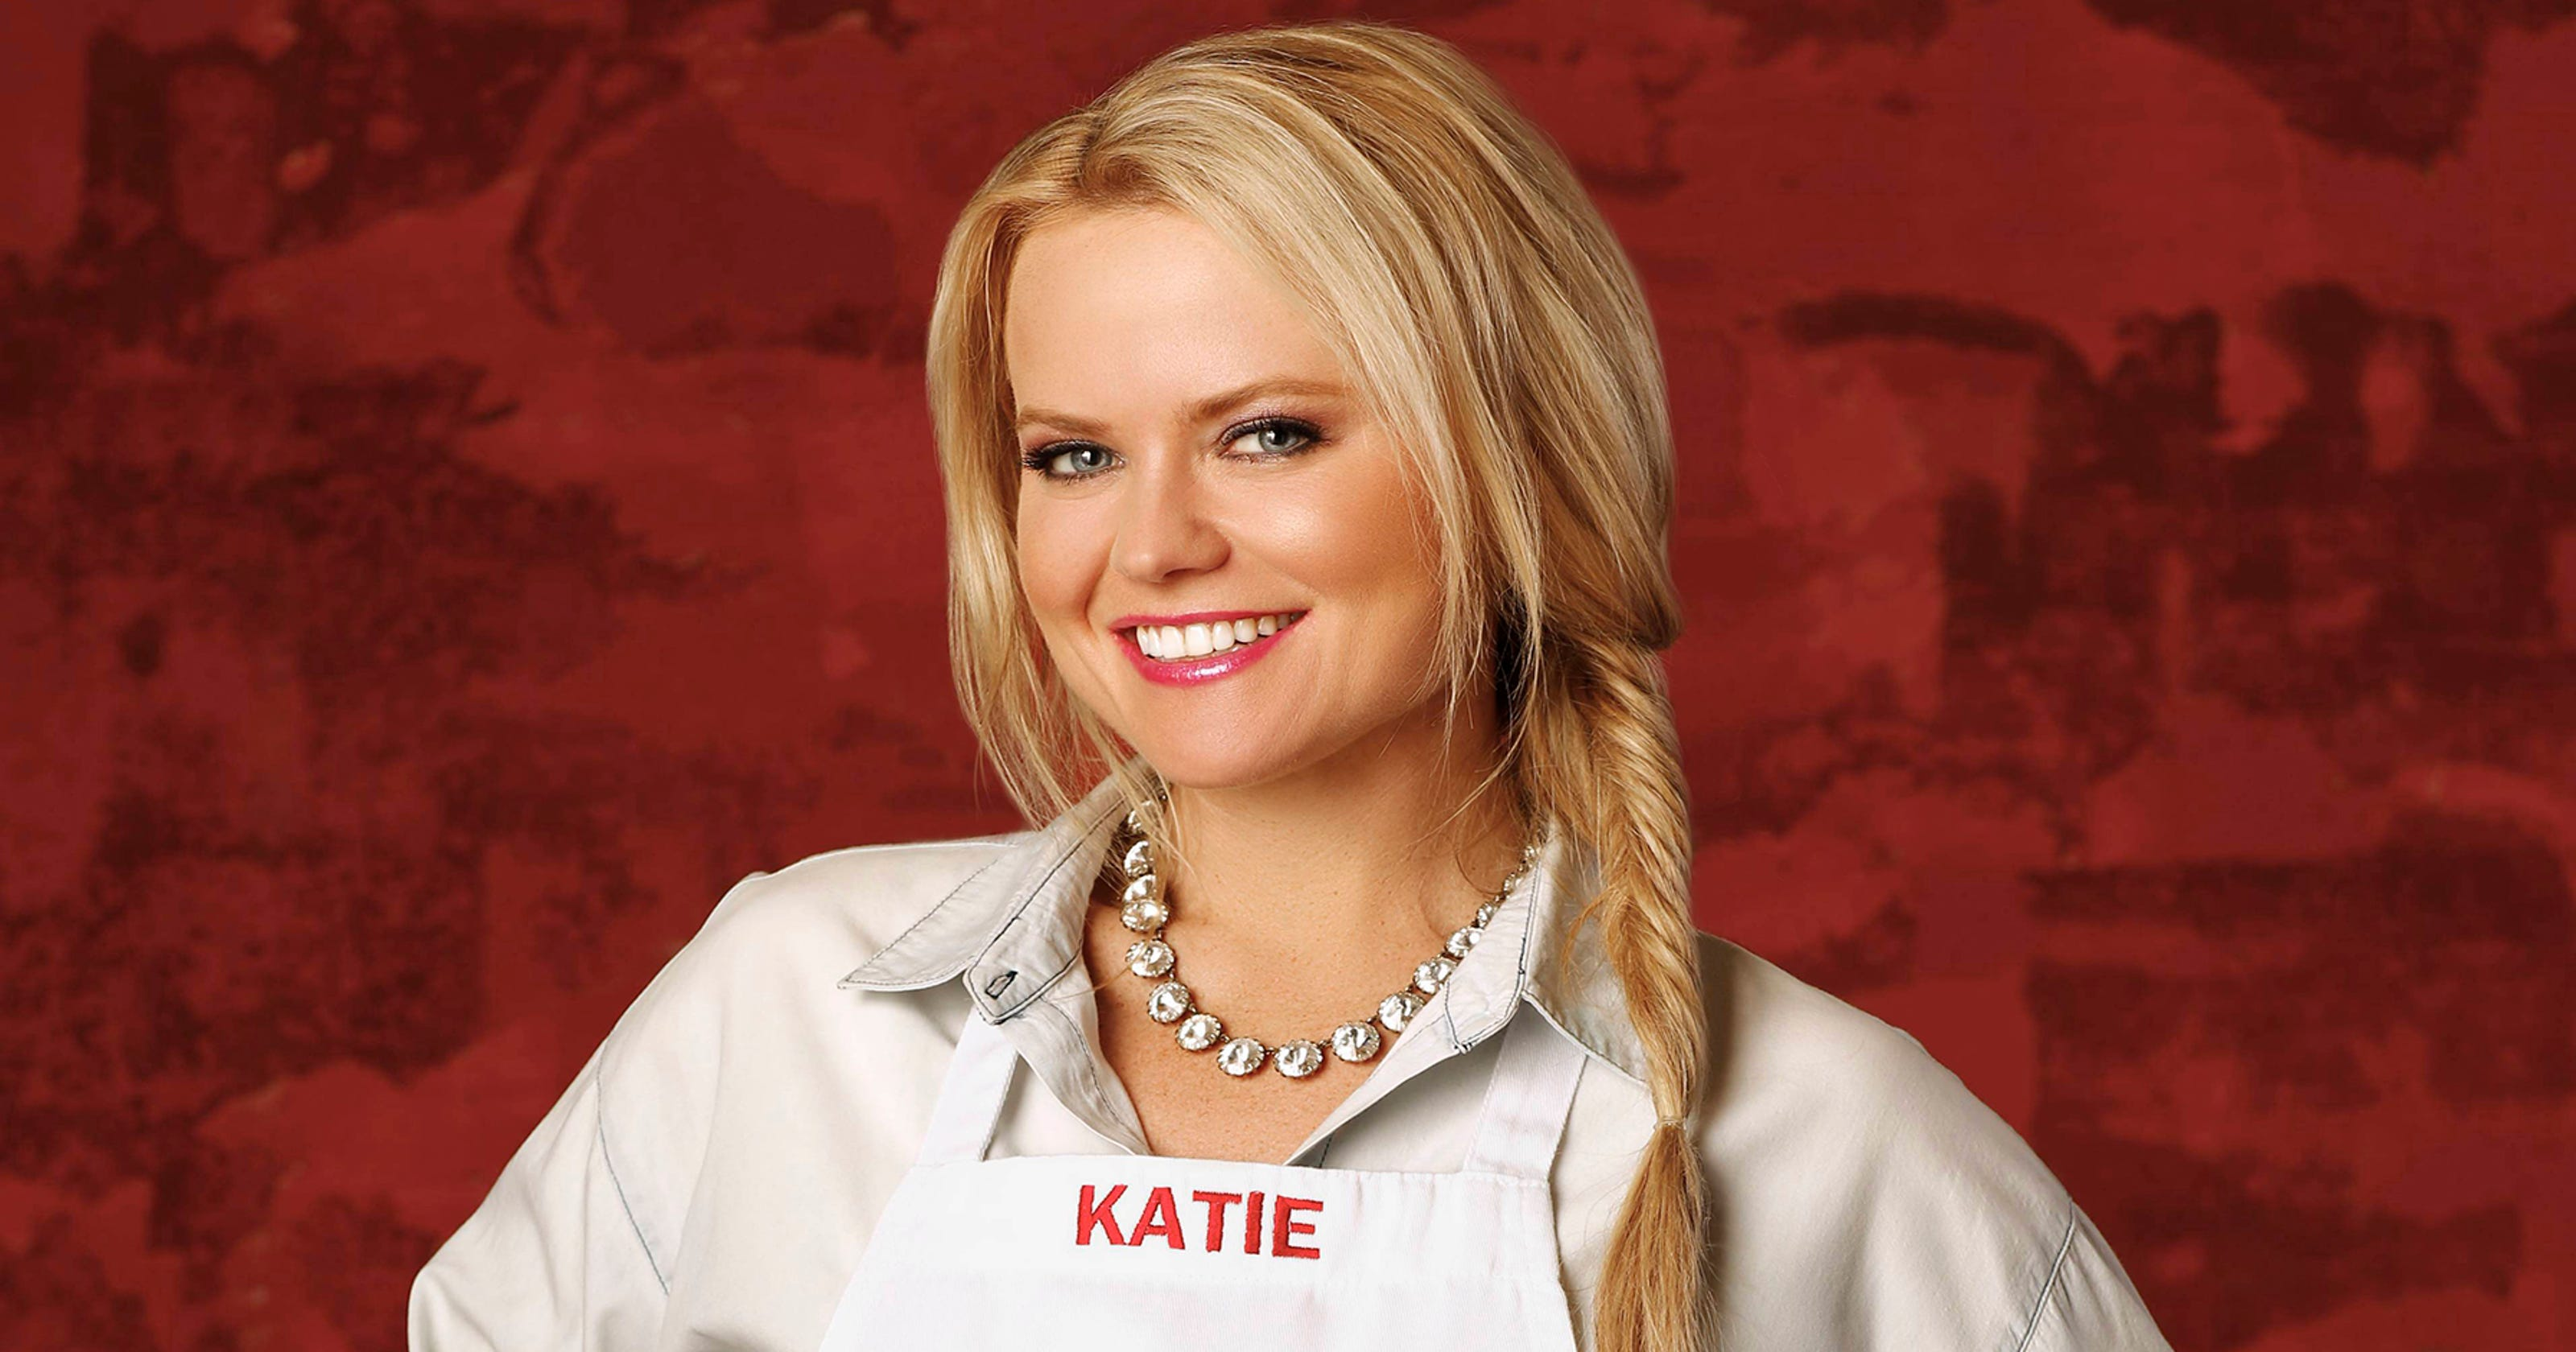 Hattiesburg woman advances to top 20 on \'MasterChef\'